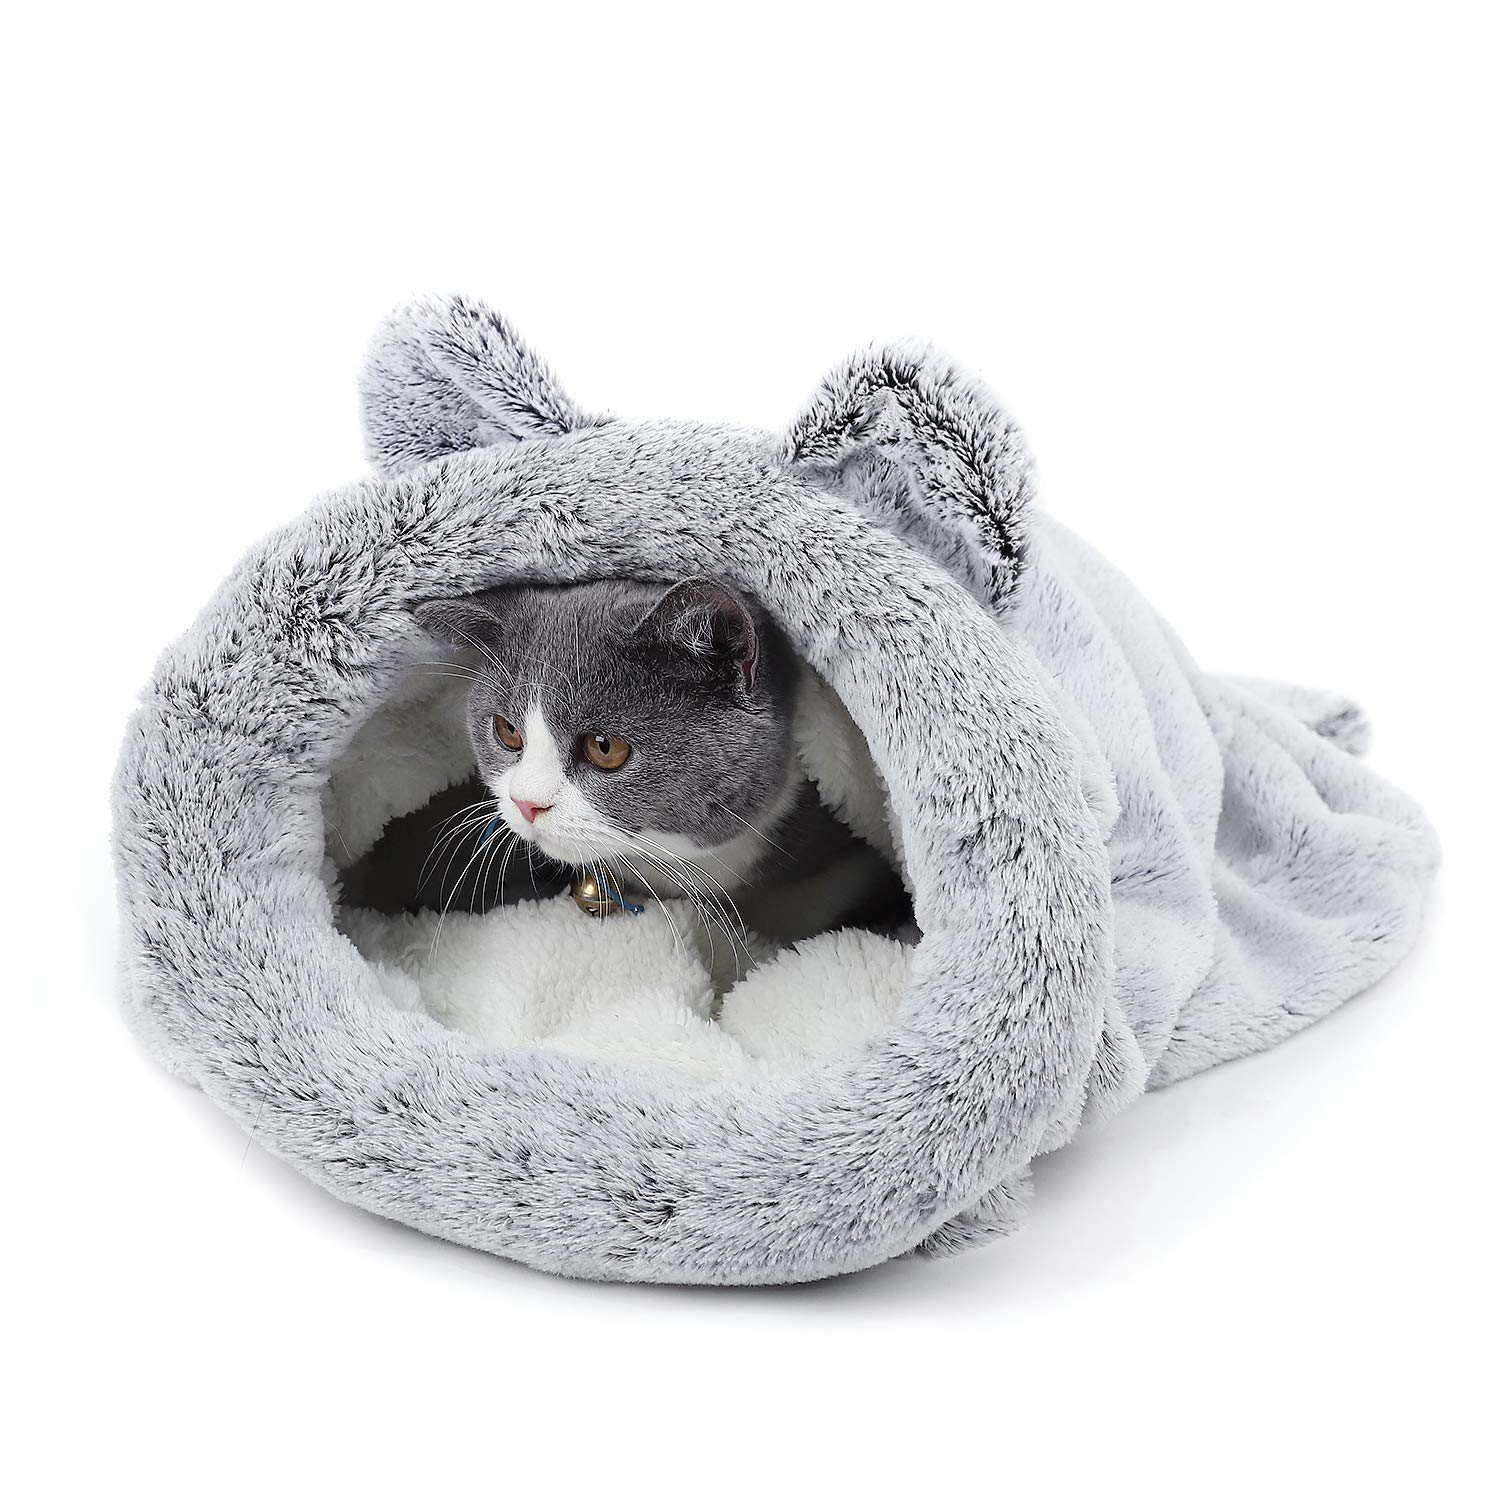 Soft cozy pet bed self-warming cat hooded cave kitty sack cat sleeping bag cat cave